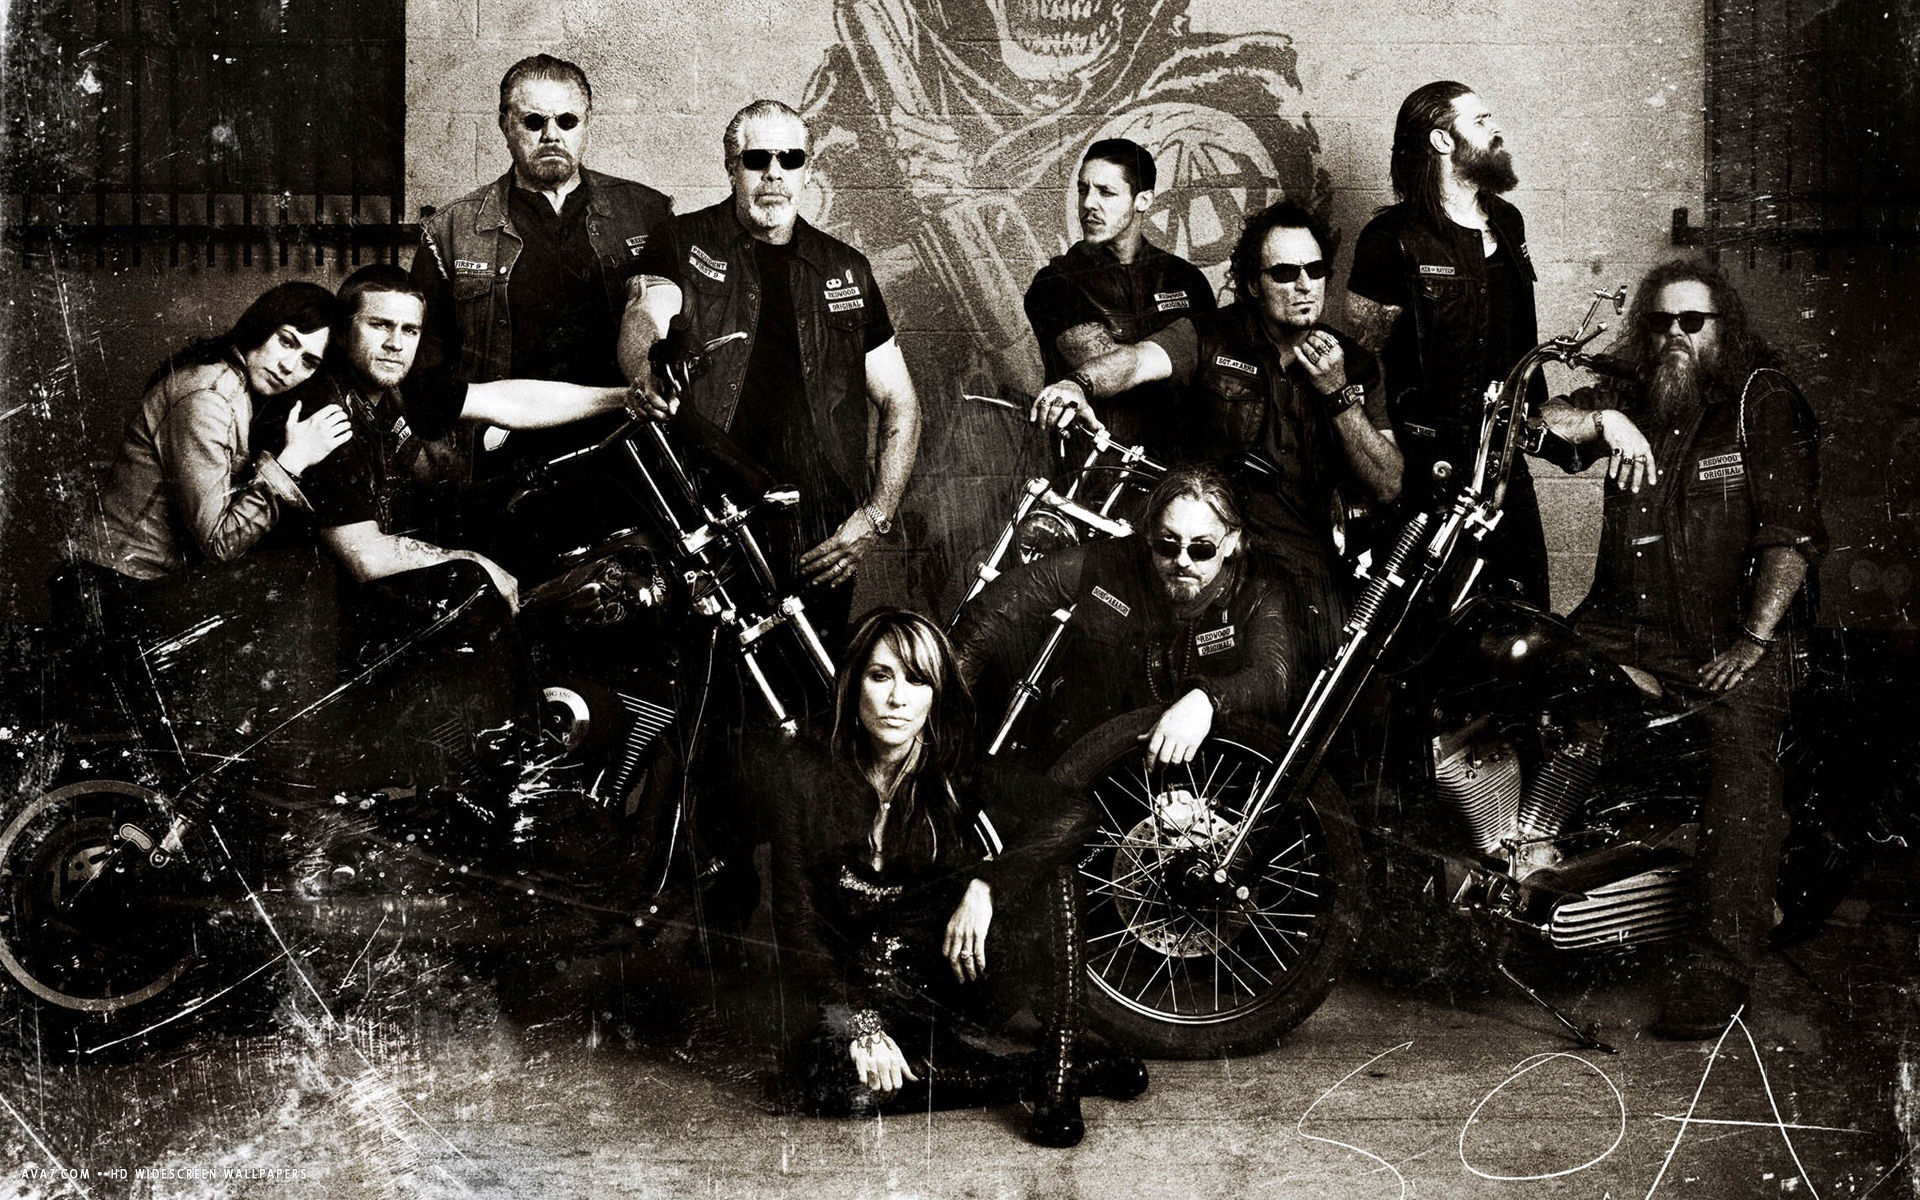 sons of anarchy tv series show hd widescreen wallpaper